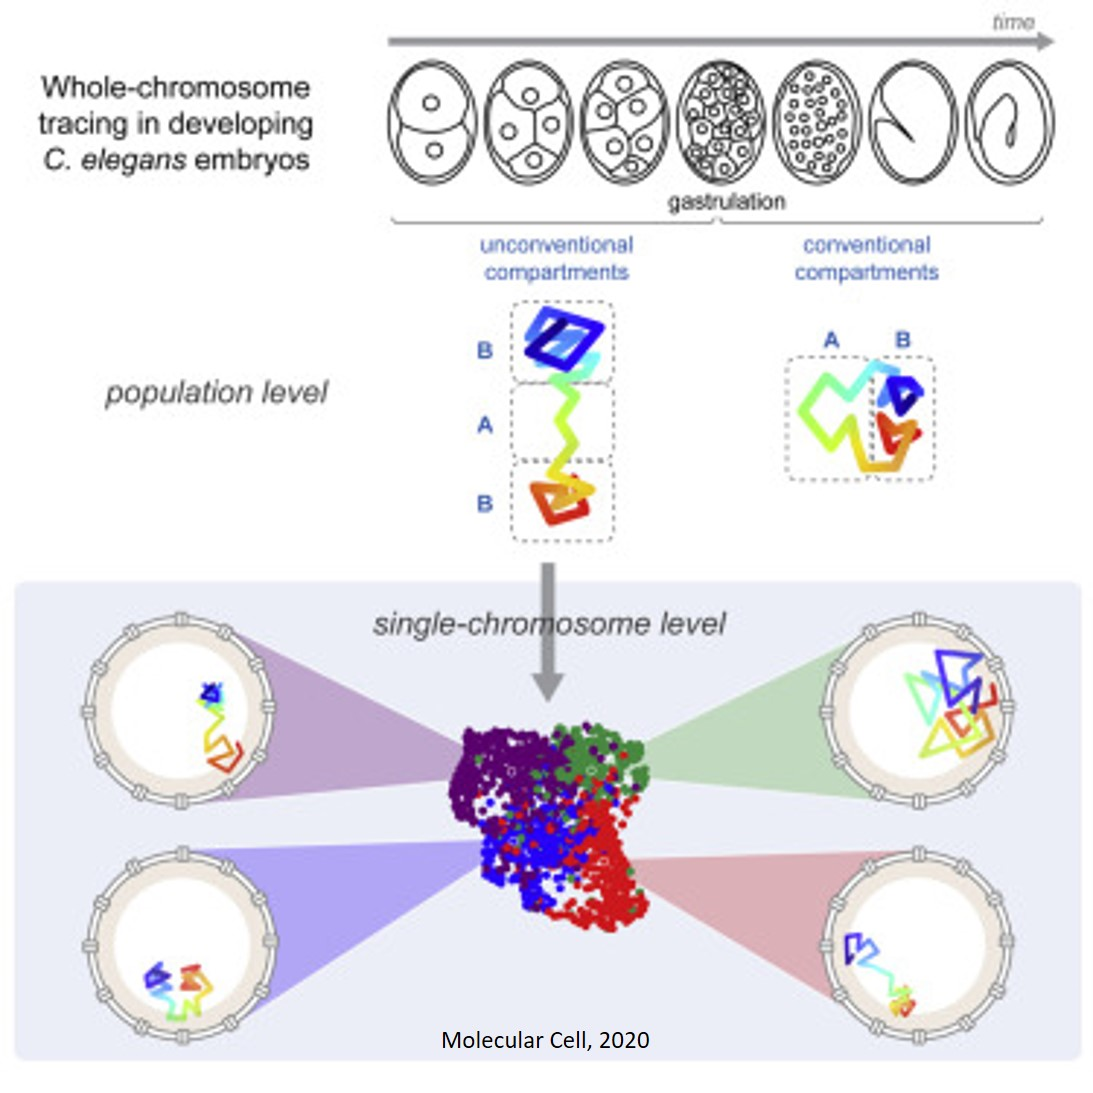 Reorganization of the genome during development